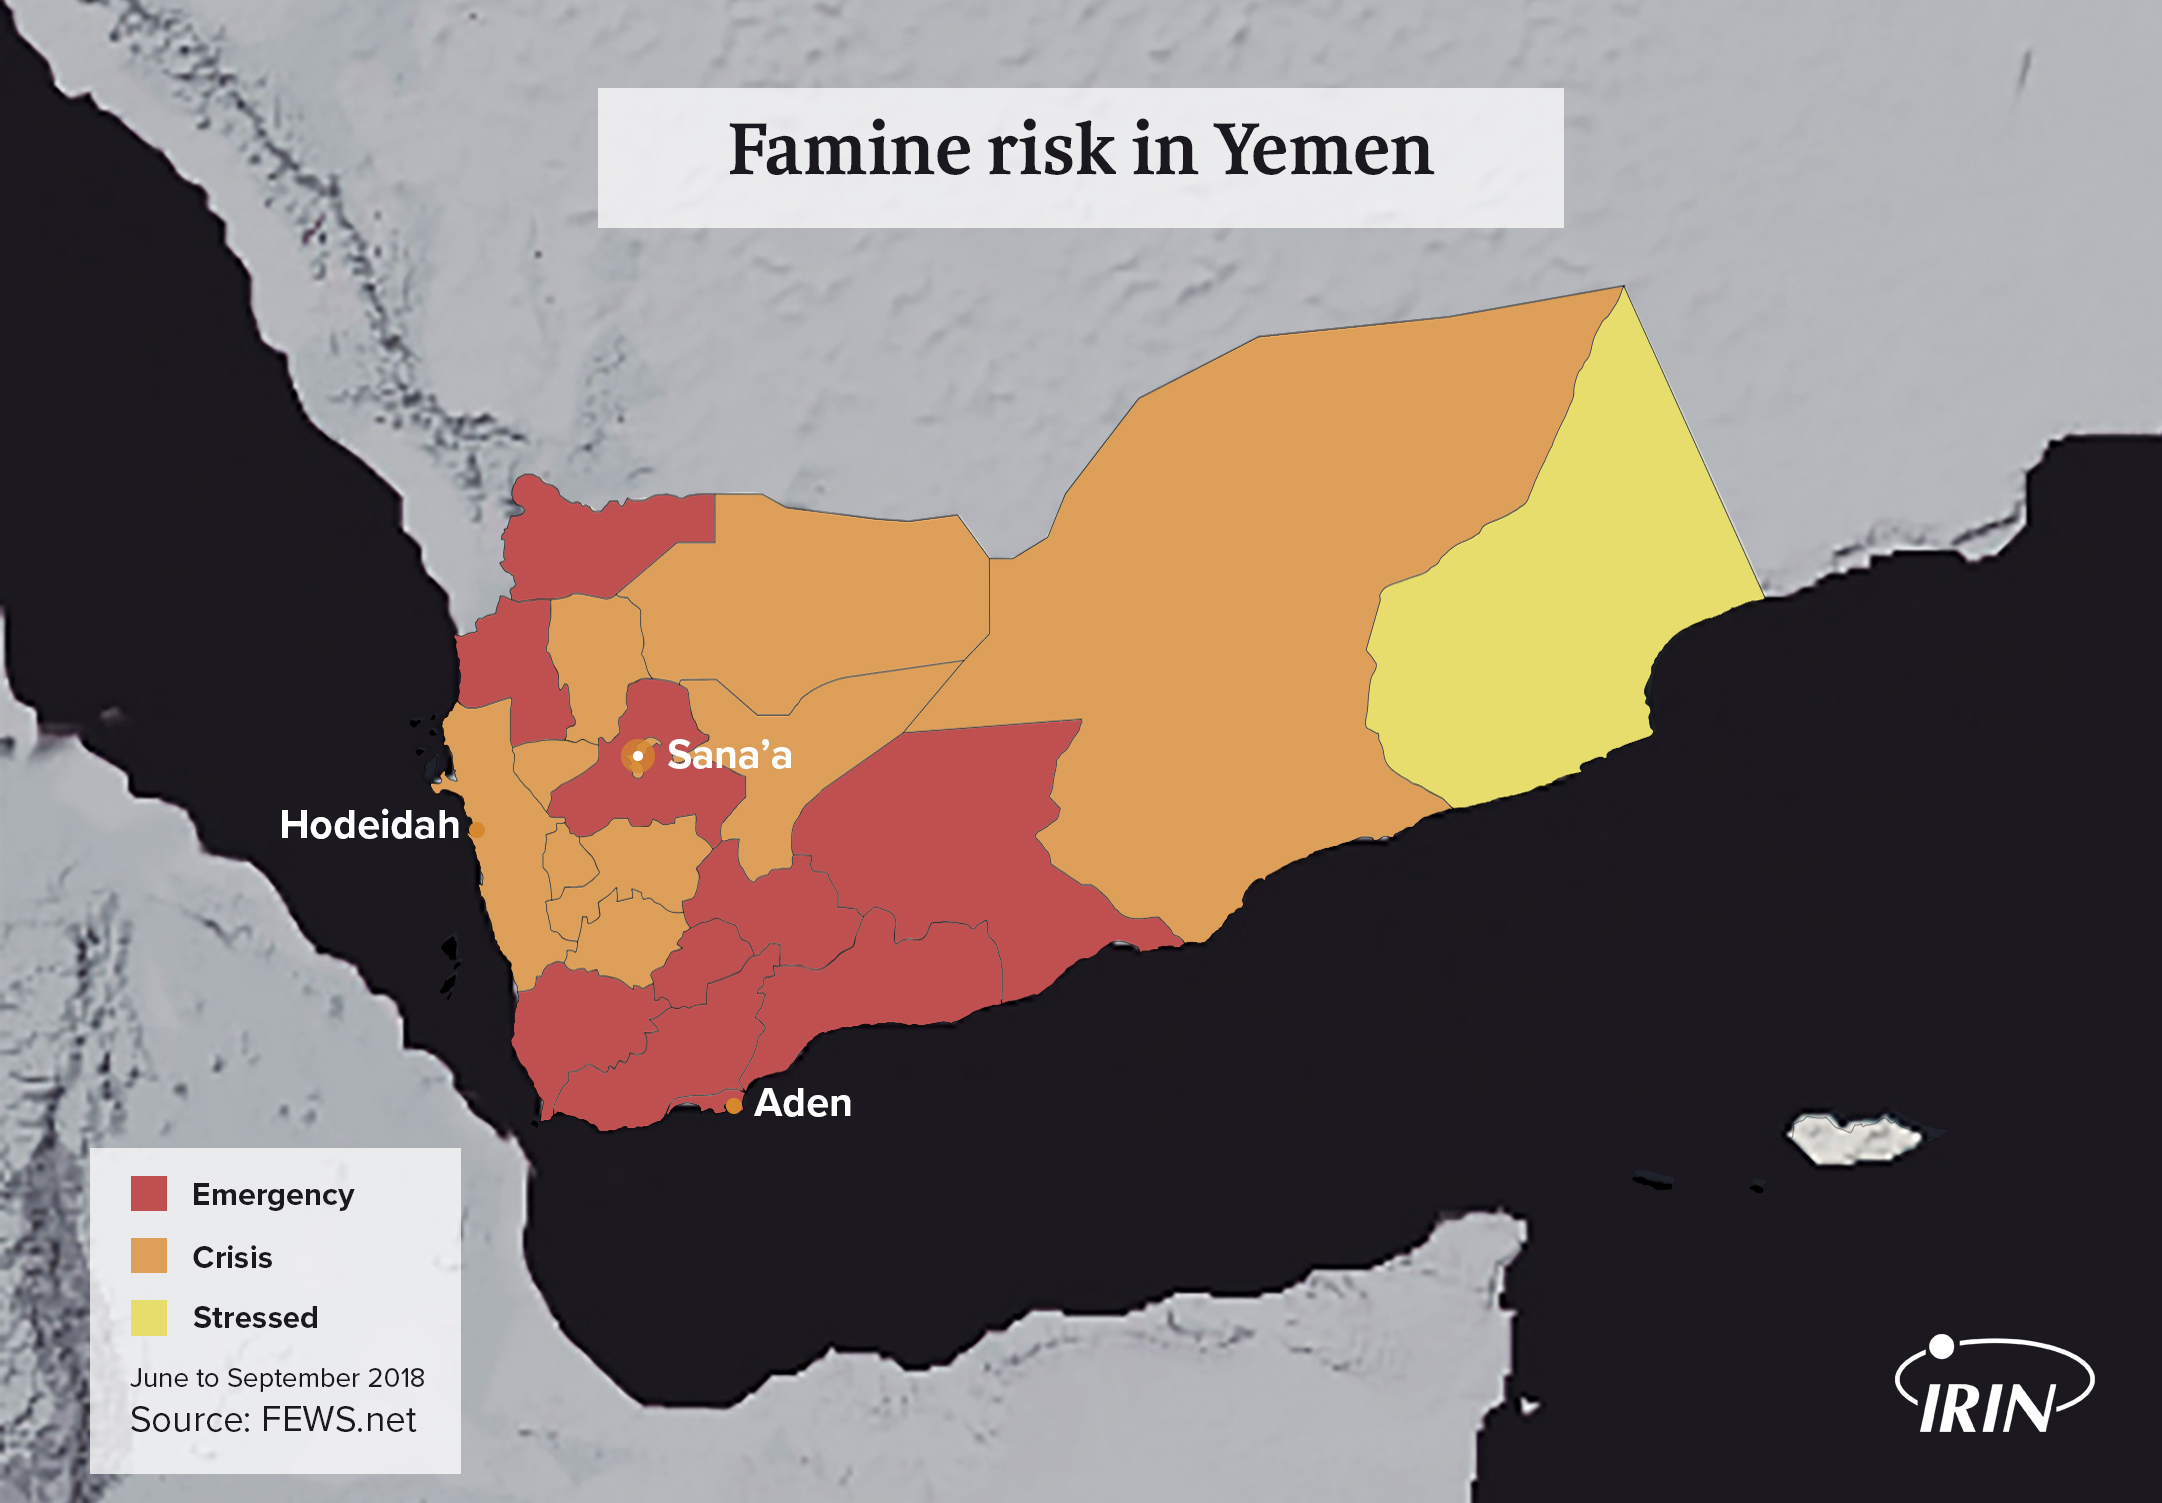 map of Yemen including Hodeidah, Sana'a, and Aden with FEWS NET famine risk shown